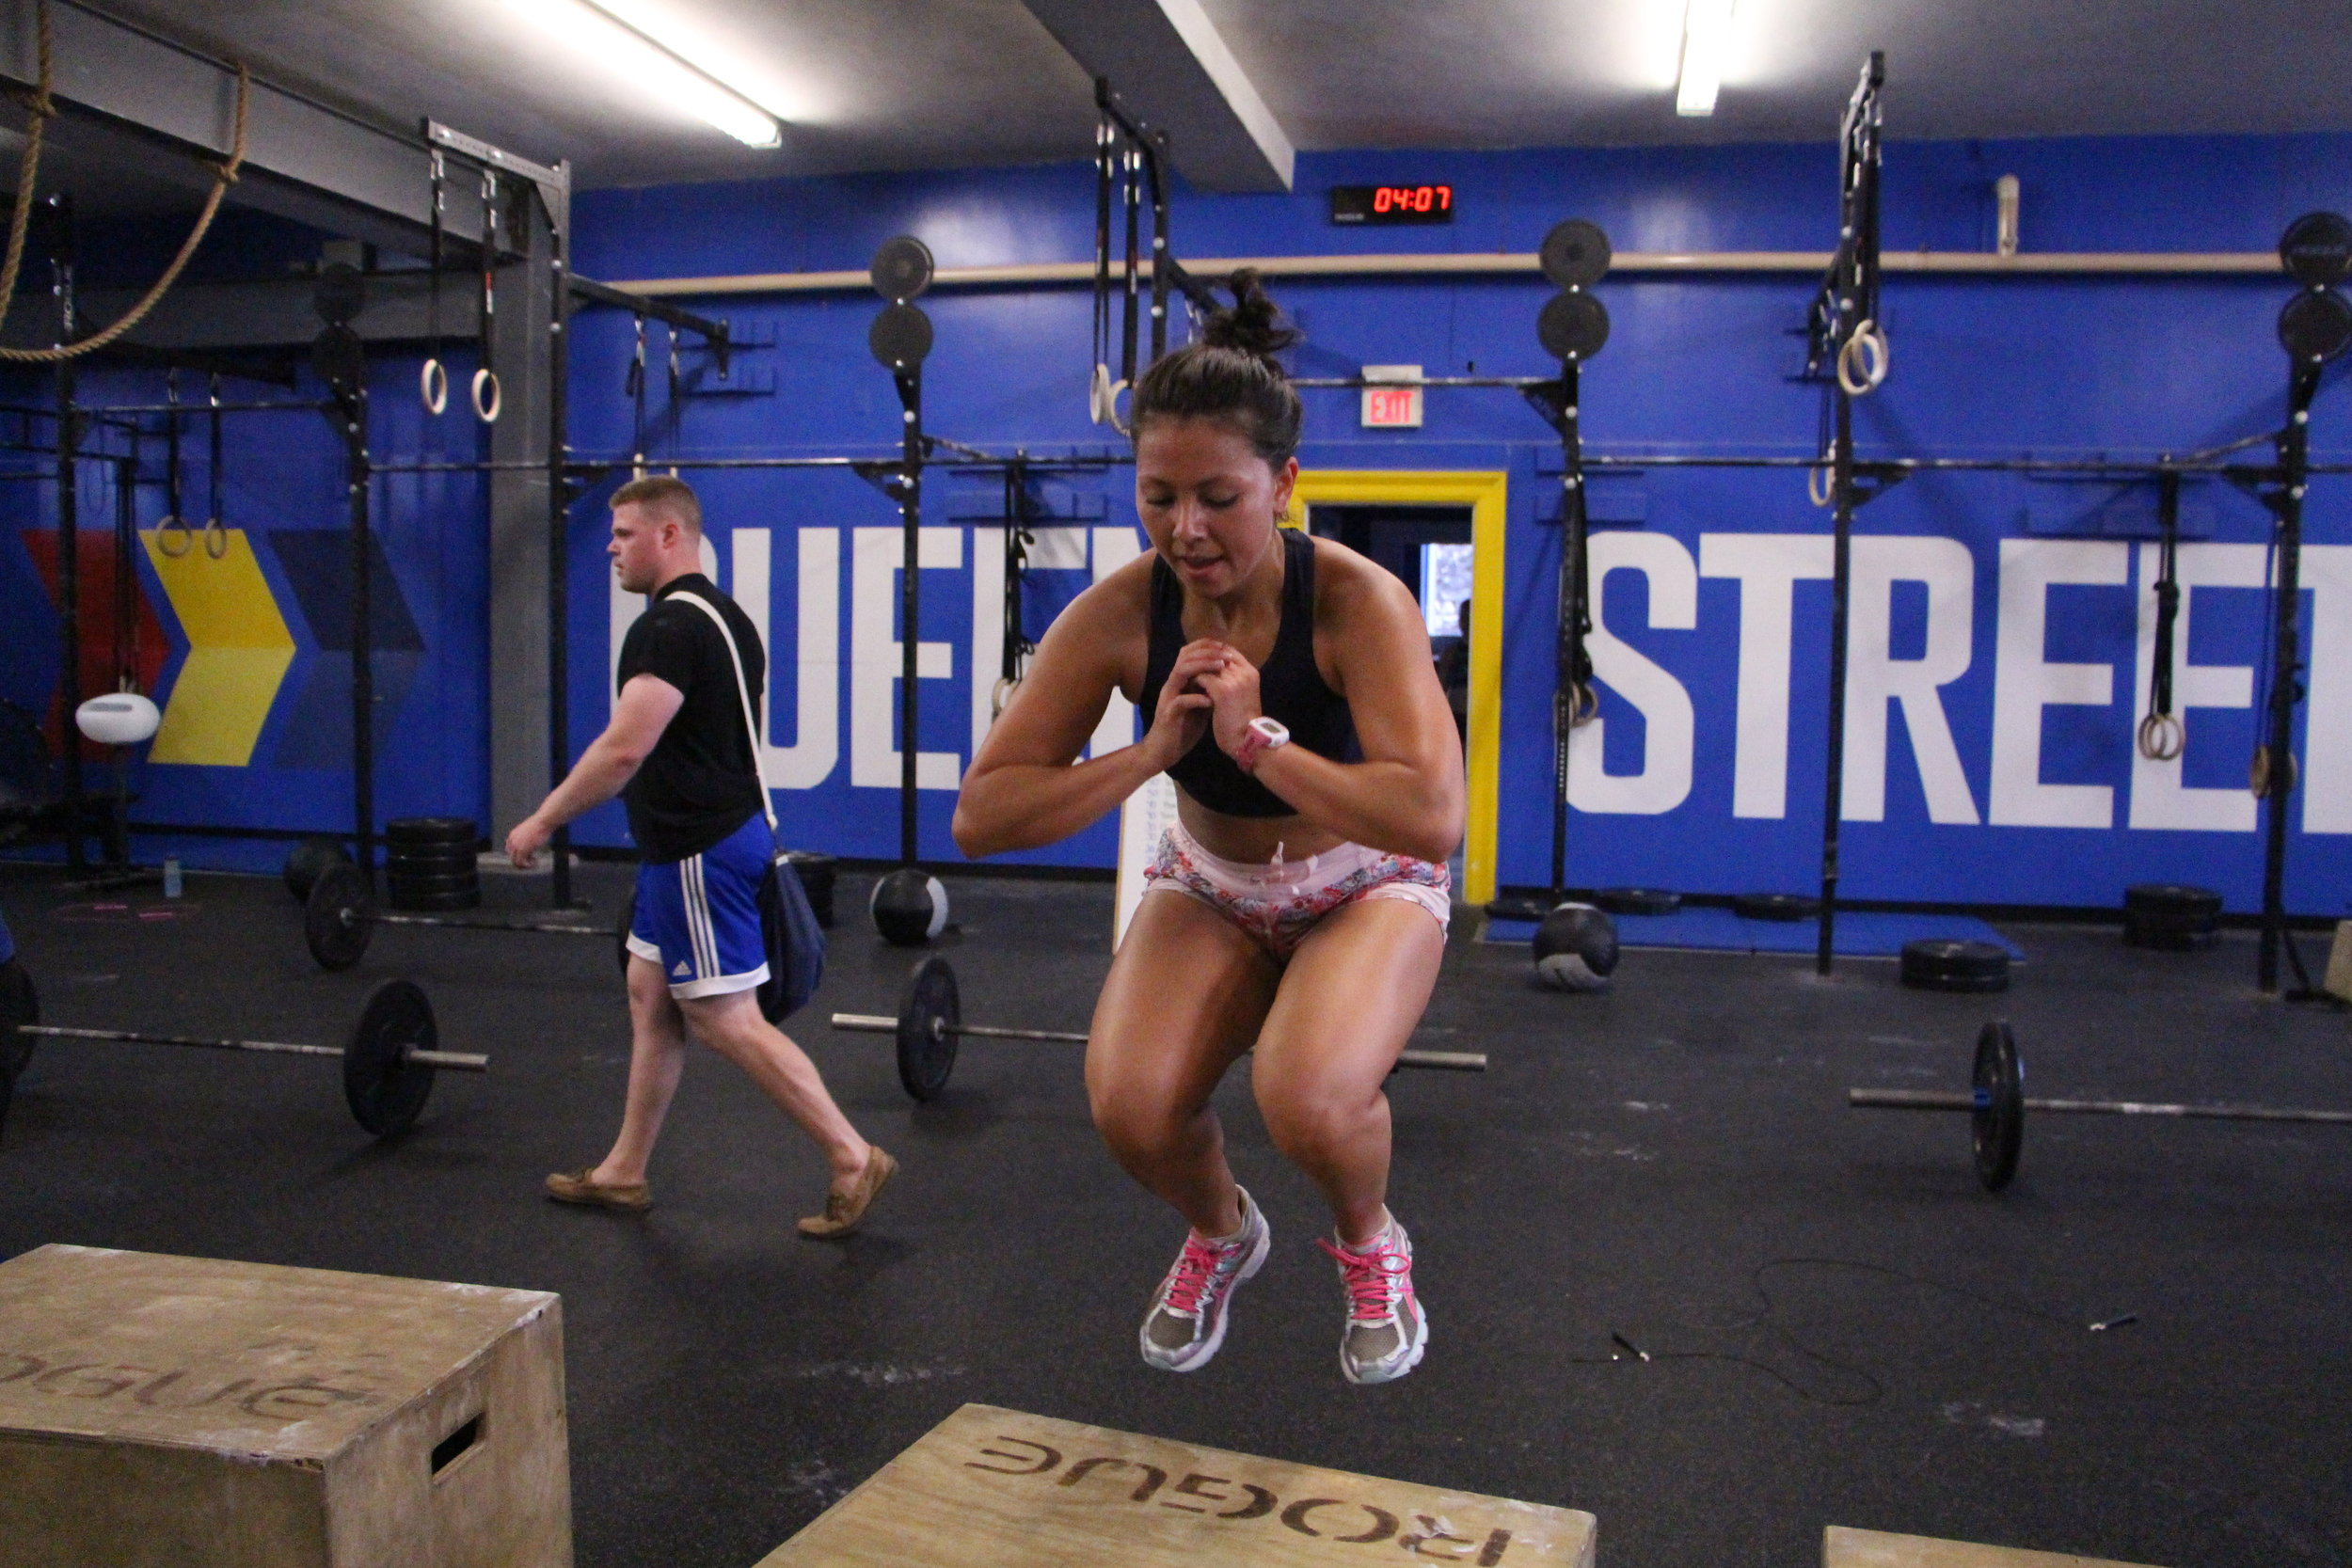 box jumps  Scale box height  Step-ups  Weight set-ups with dumbbells - lower the height of the box